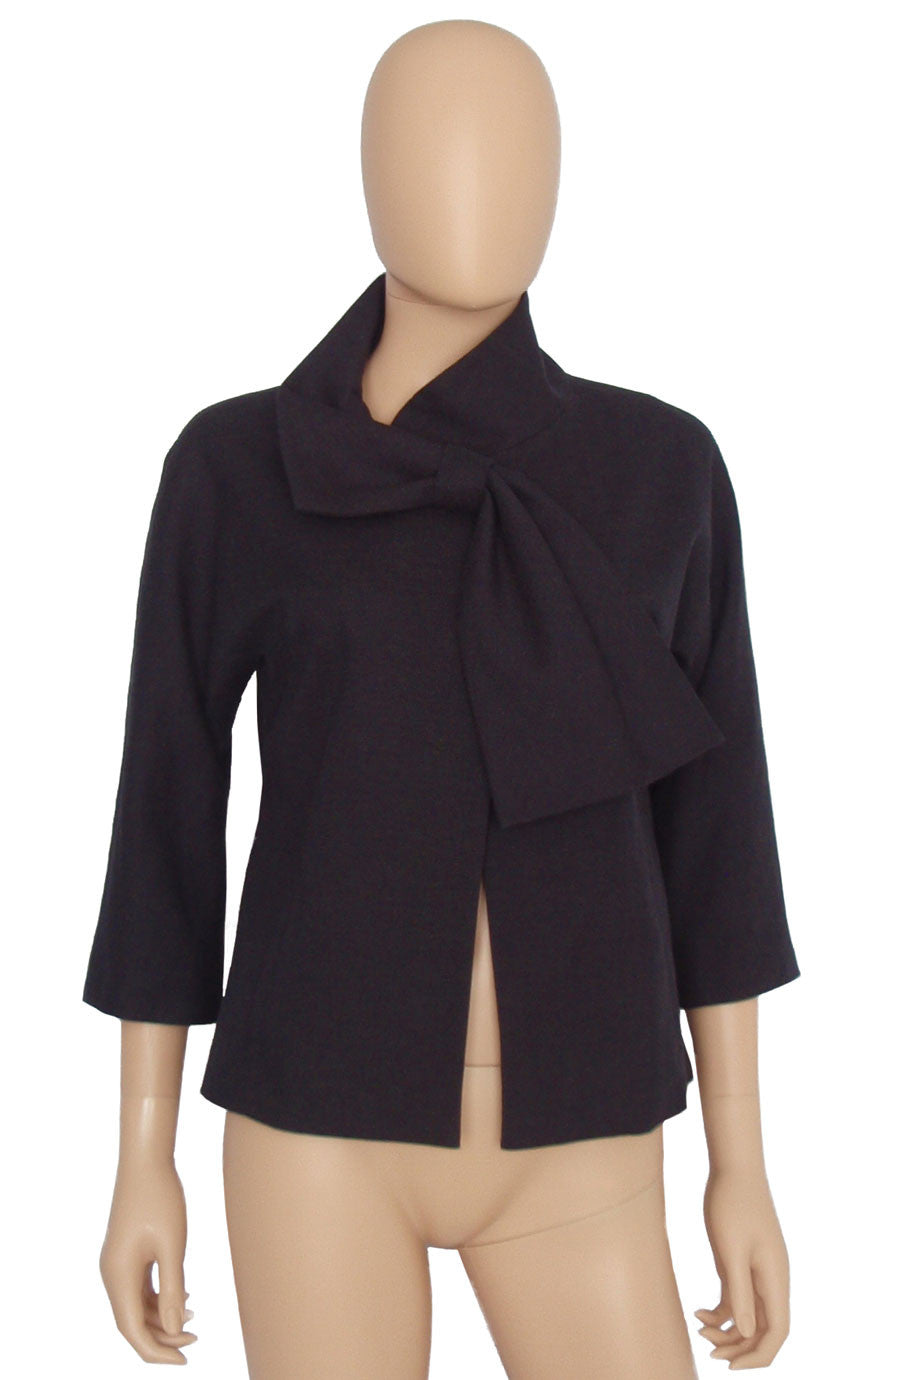 Lela Rose Black Cotton-Linen Tie Front 3/4 Sleeve Jacket / Sz 4 - Style Therapy  - 1